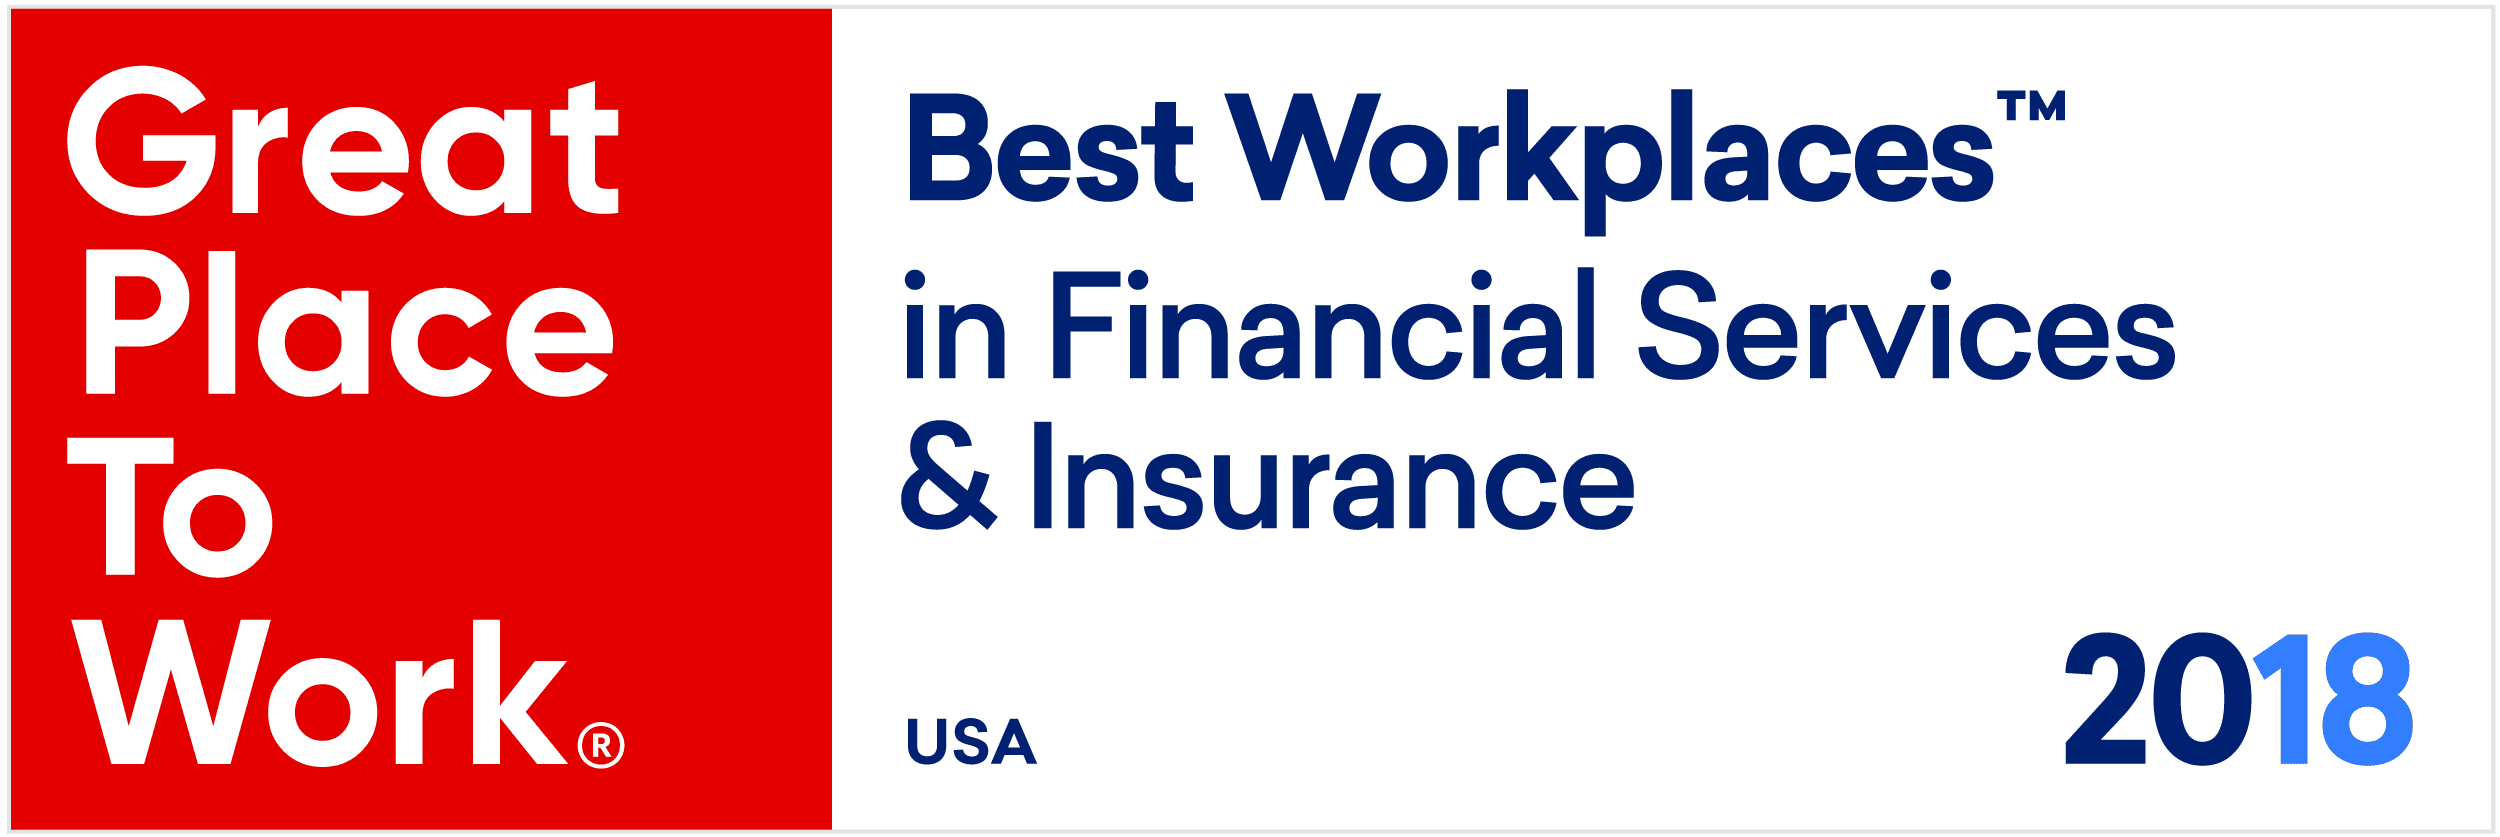 "BAM was named one of the ""Best Medium Workplaces"" by the Great Place to Work Institute and Fortune Magazine"